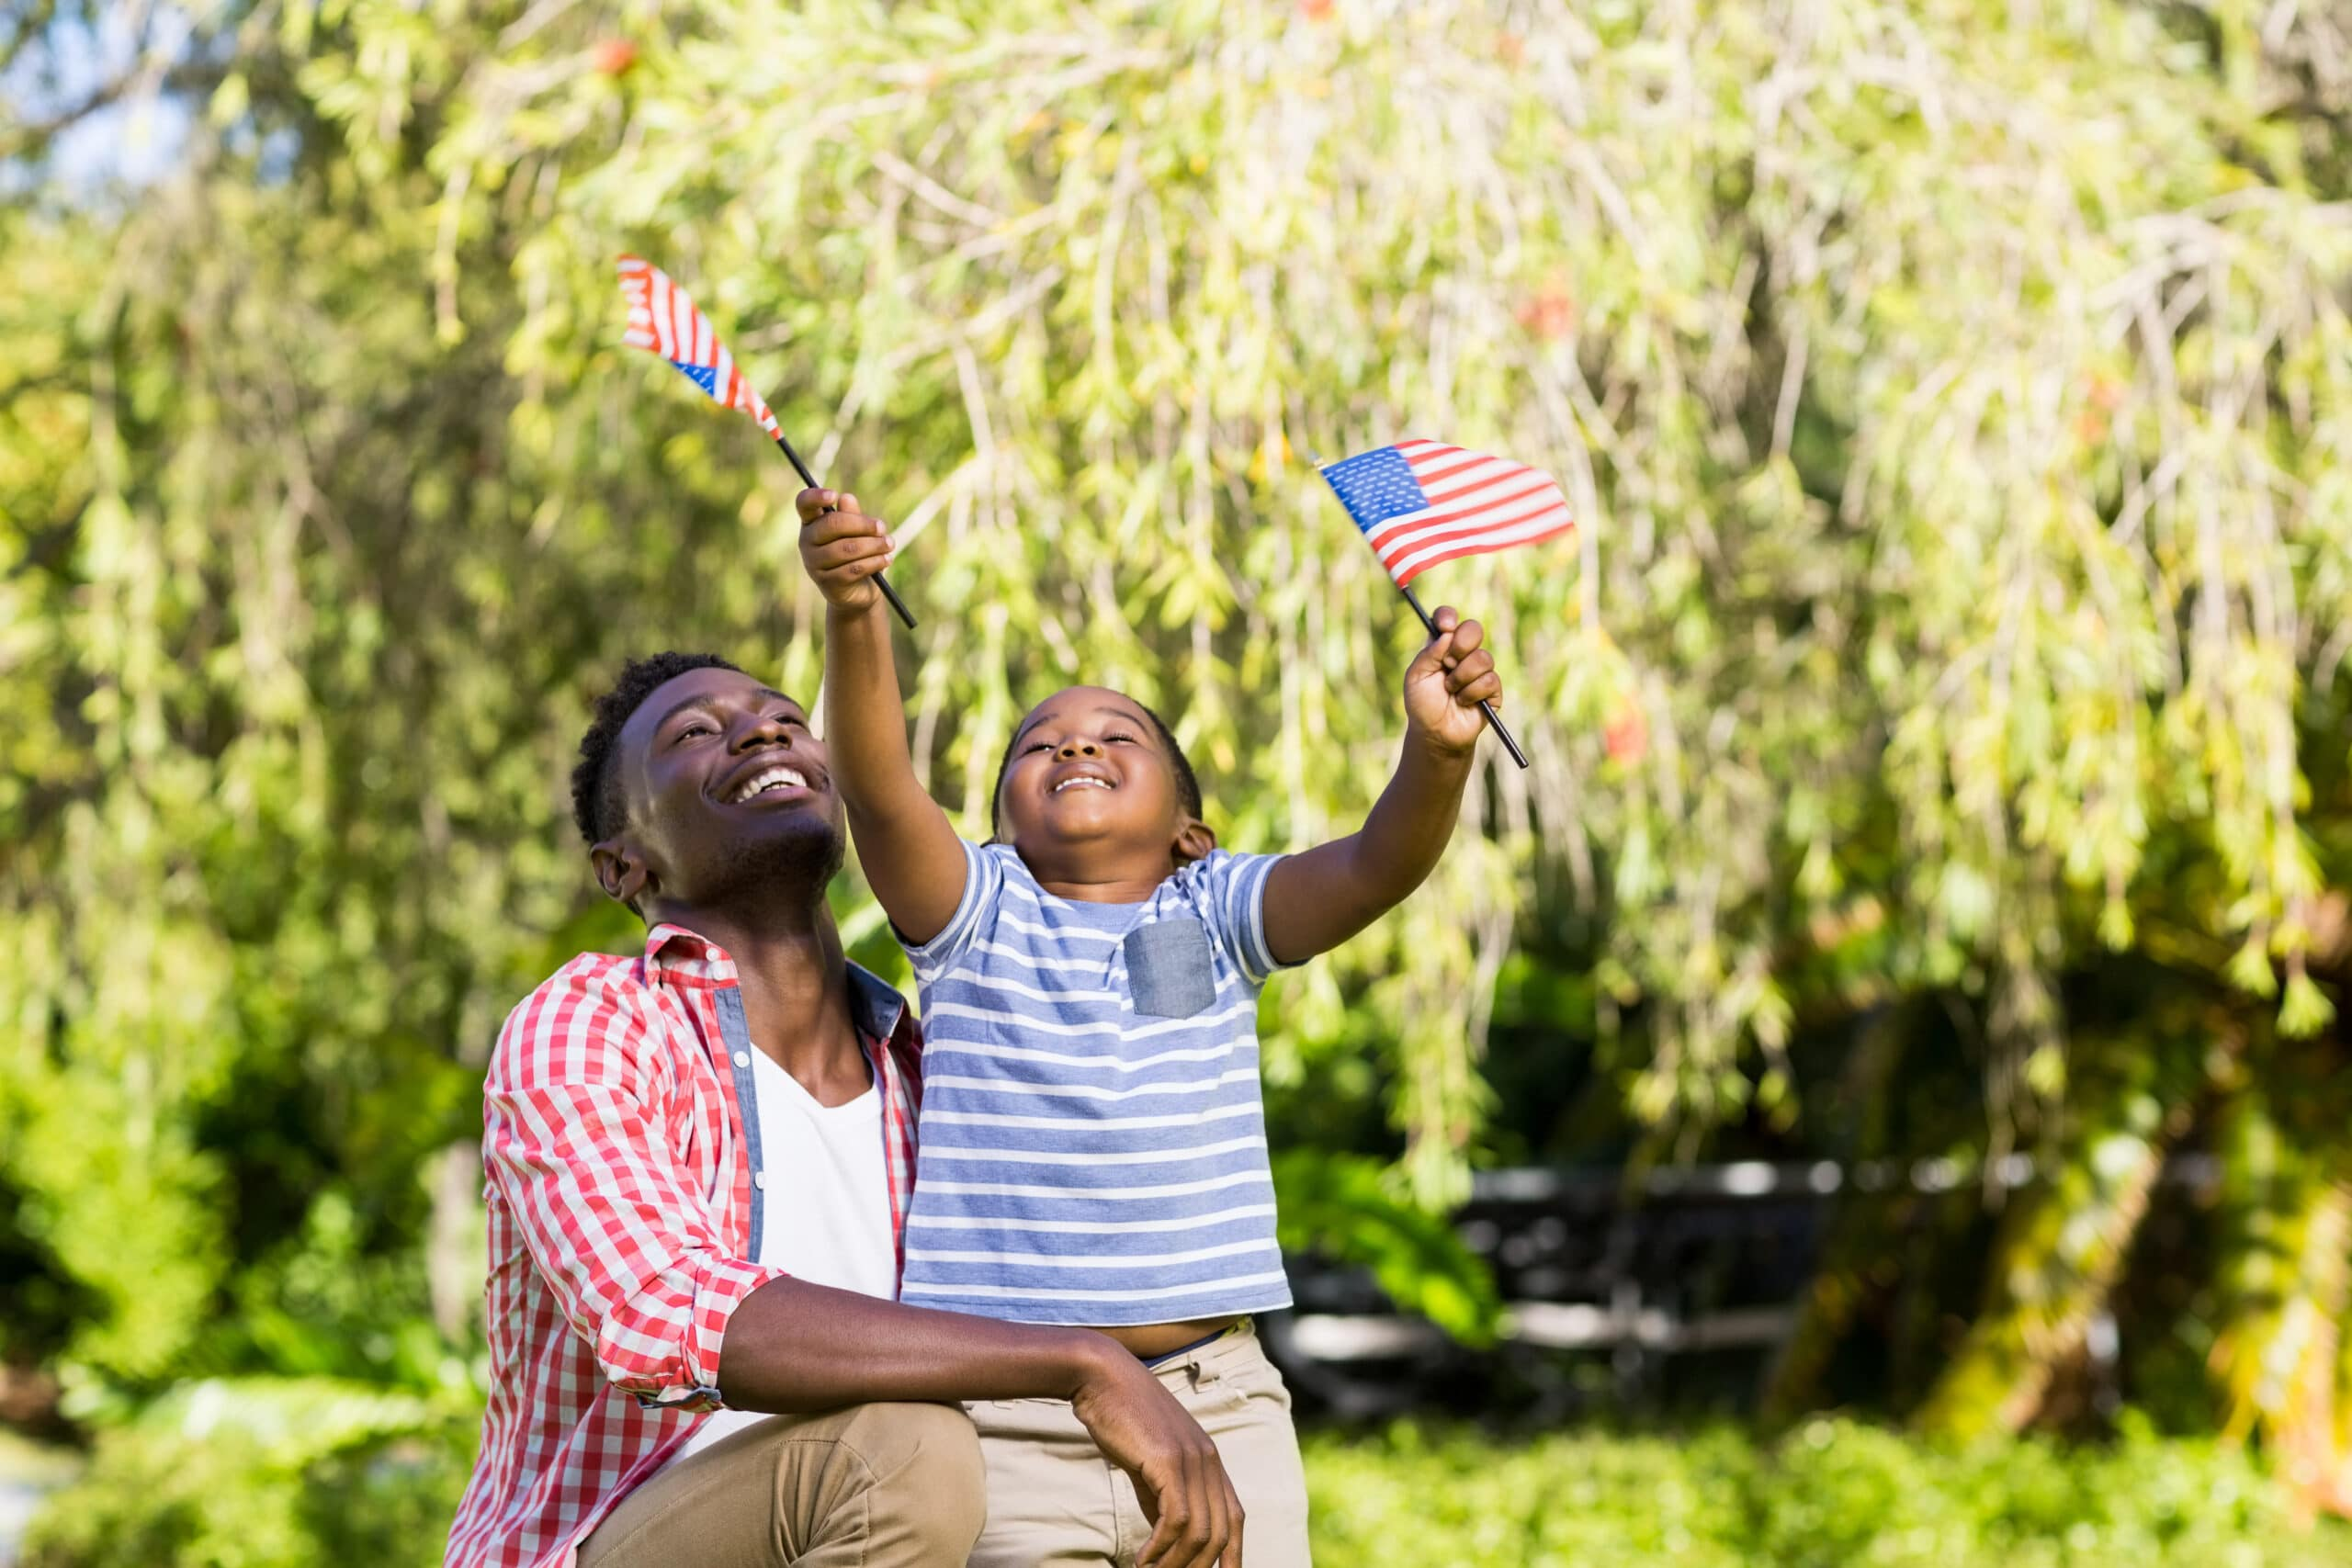 Video Gifts for Veterans and Active Duty Military Members, Boy With Flags